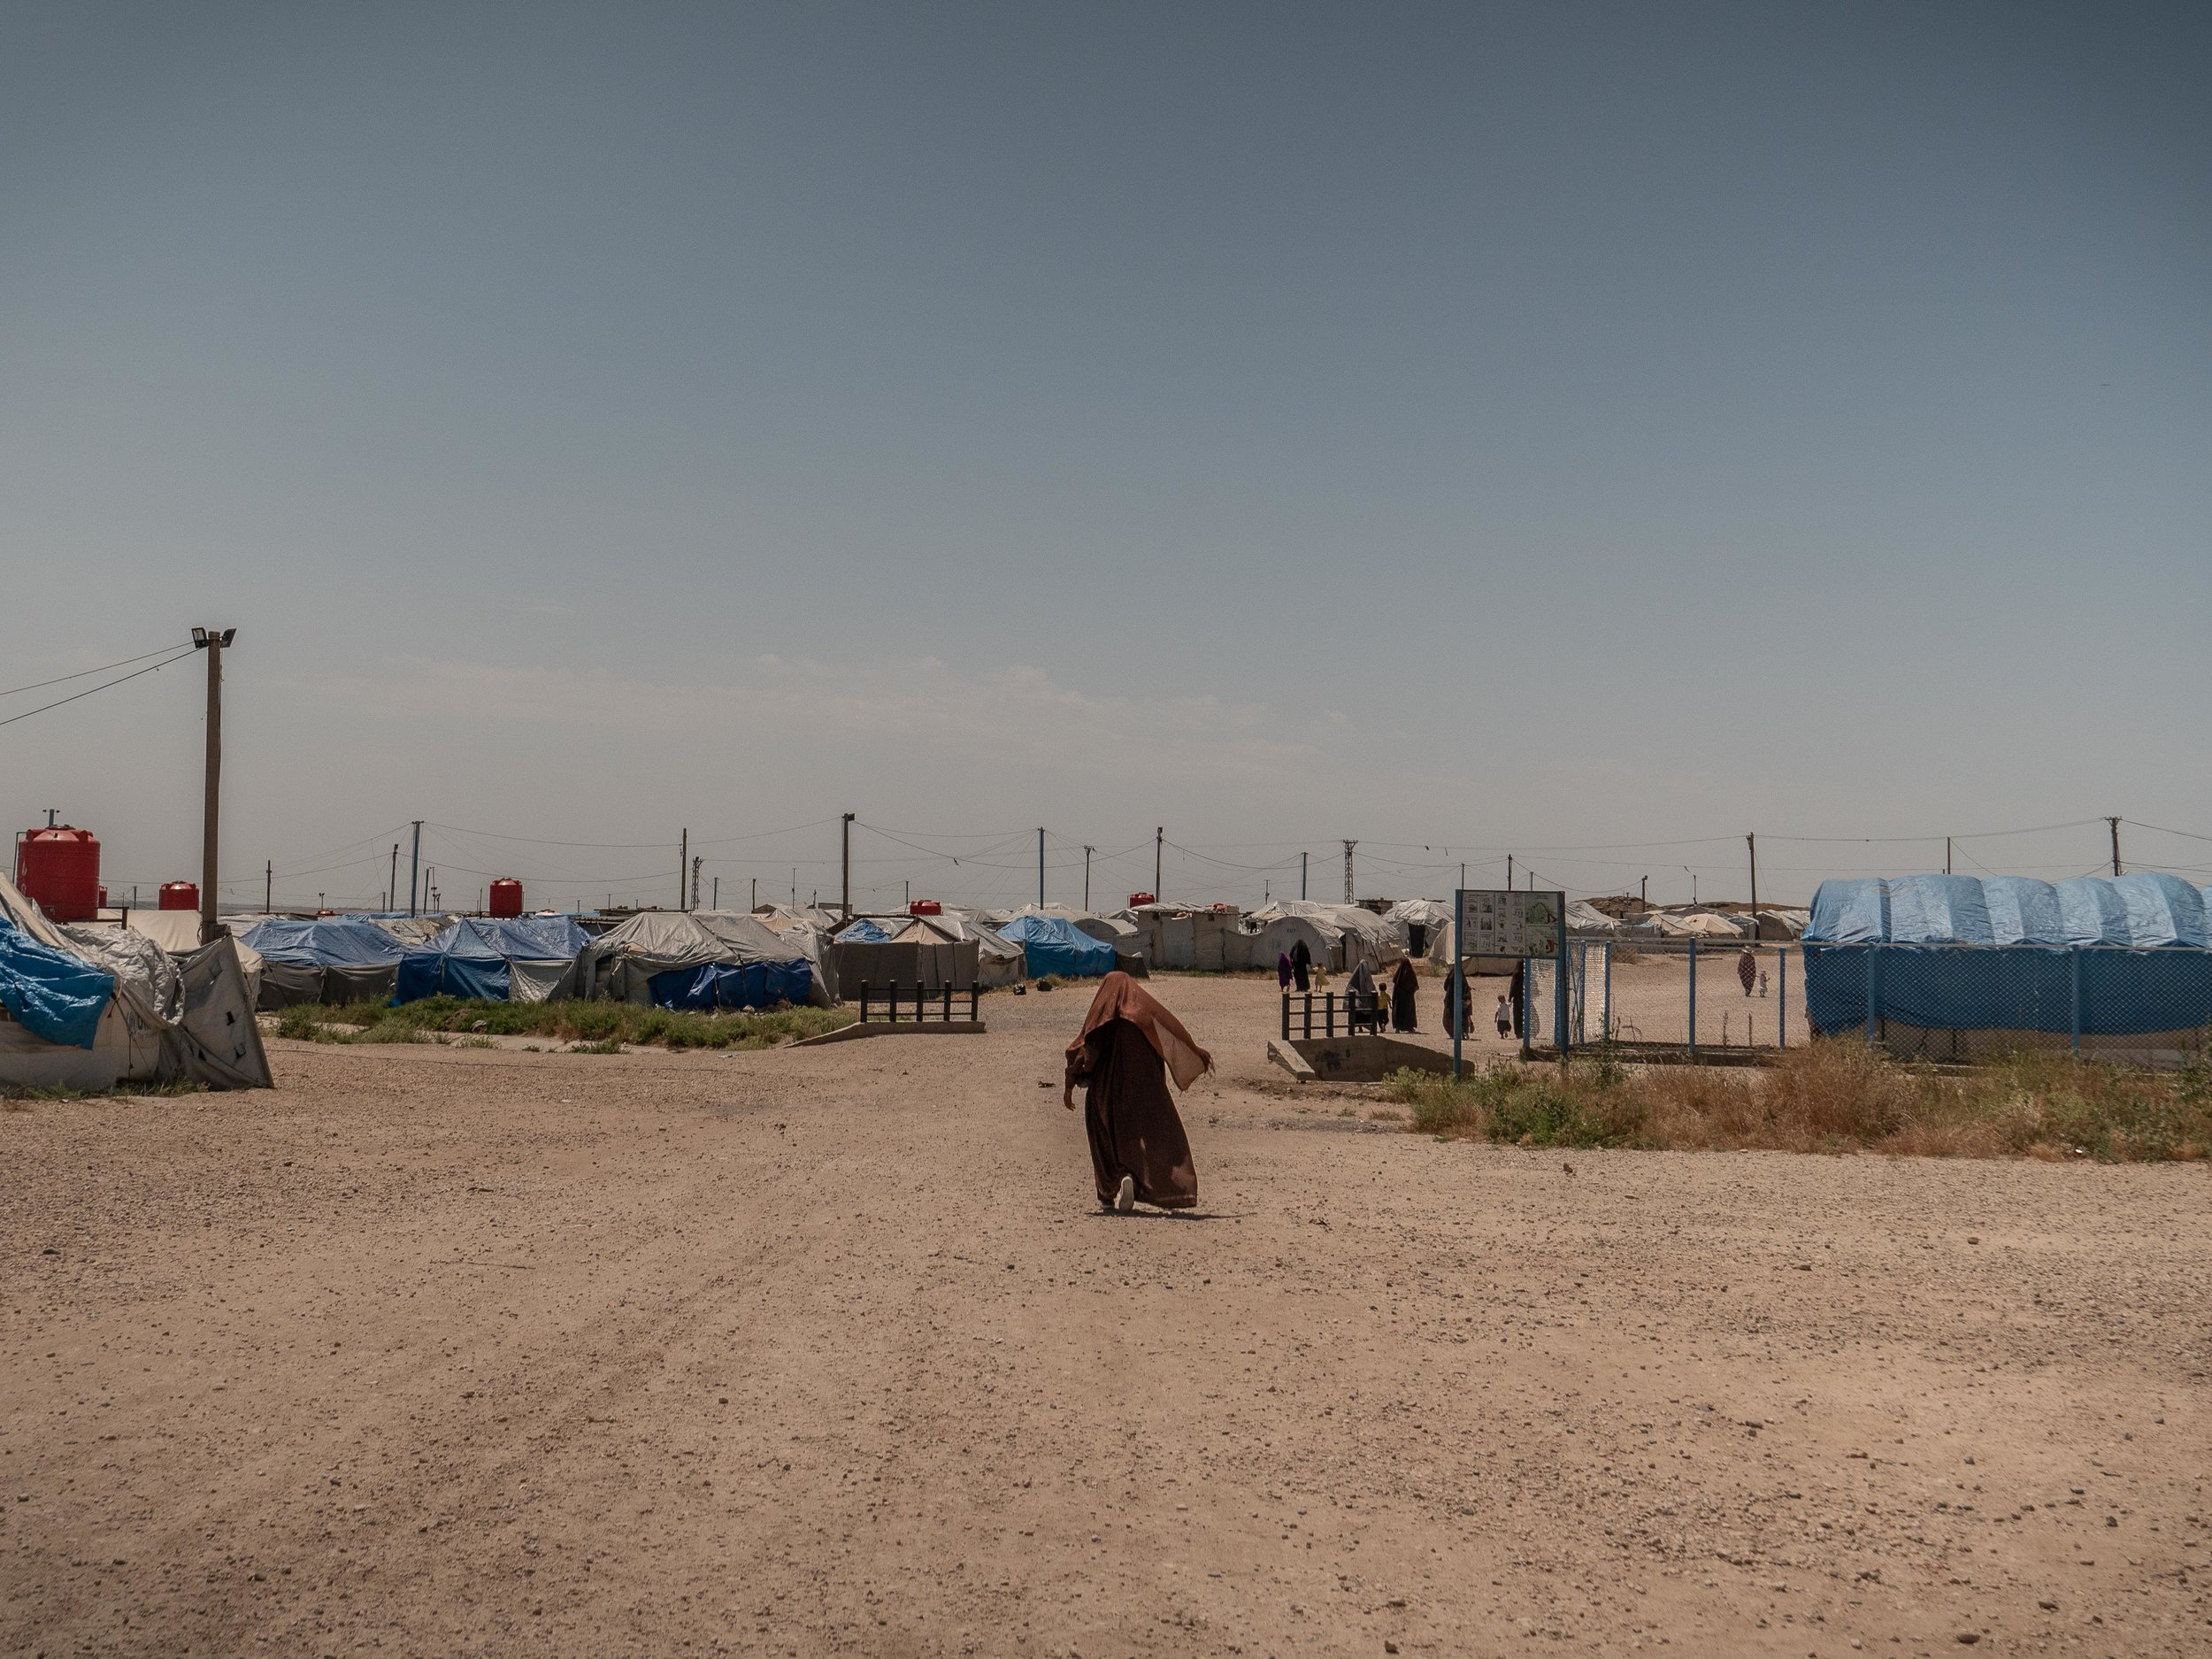 01/06/2019 - Roj Camp, Syria - the prison camp of Roj, where ISIS families and relatives are detained.